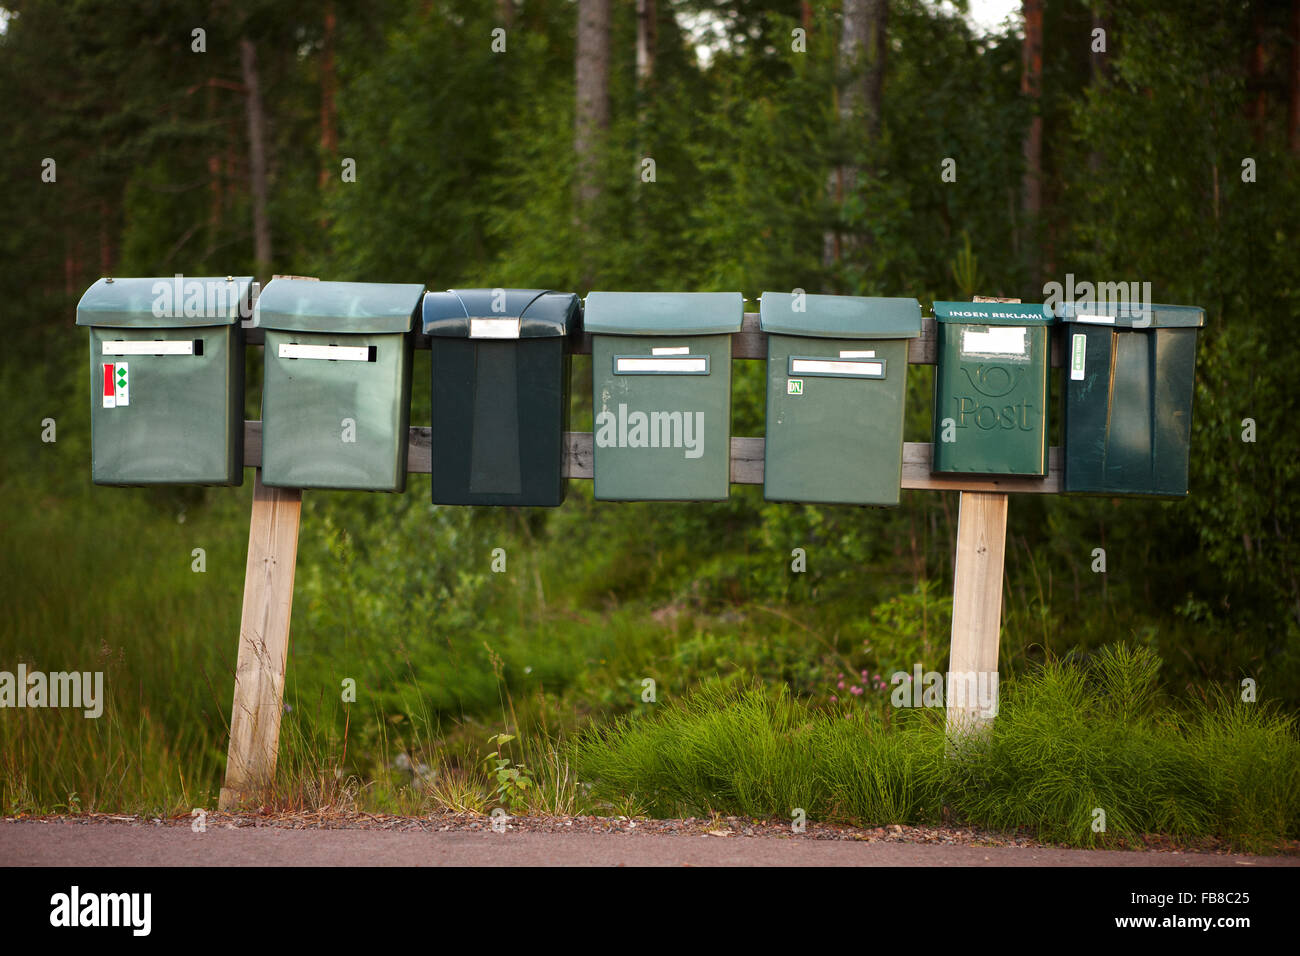 Sweden, Dalarna, Solleron, Row of mailboxes Stock Photo